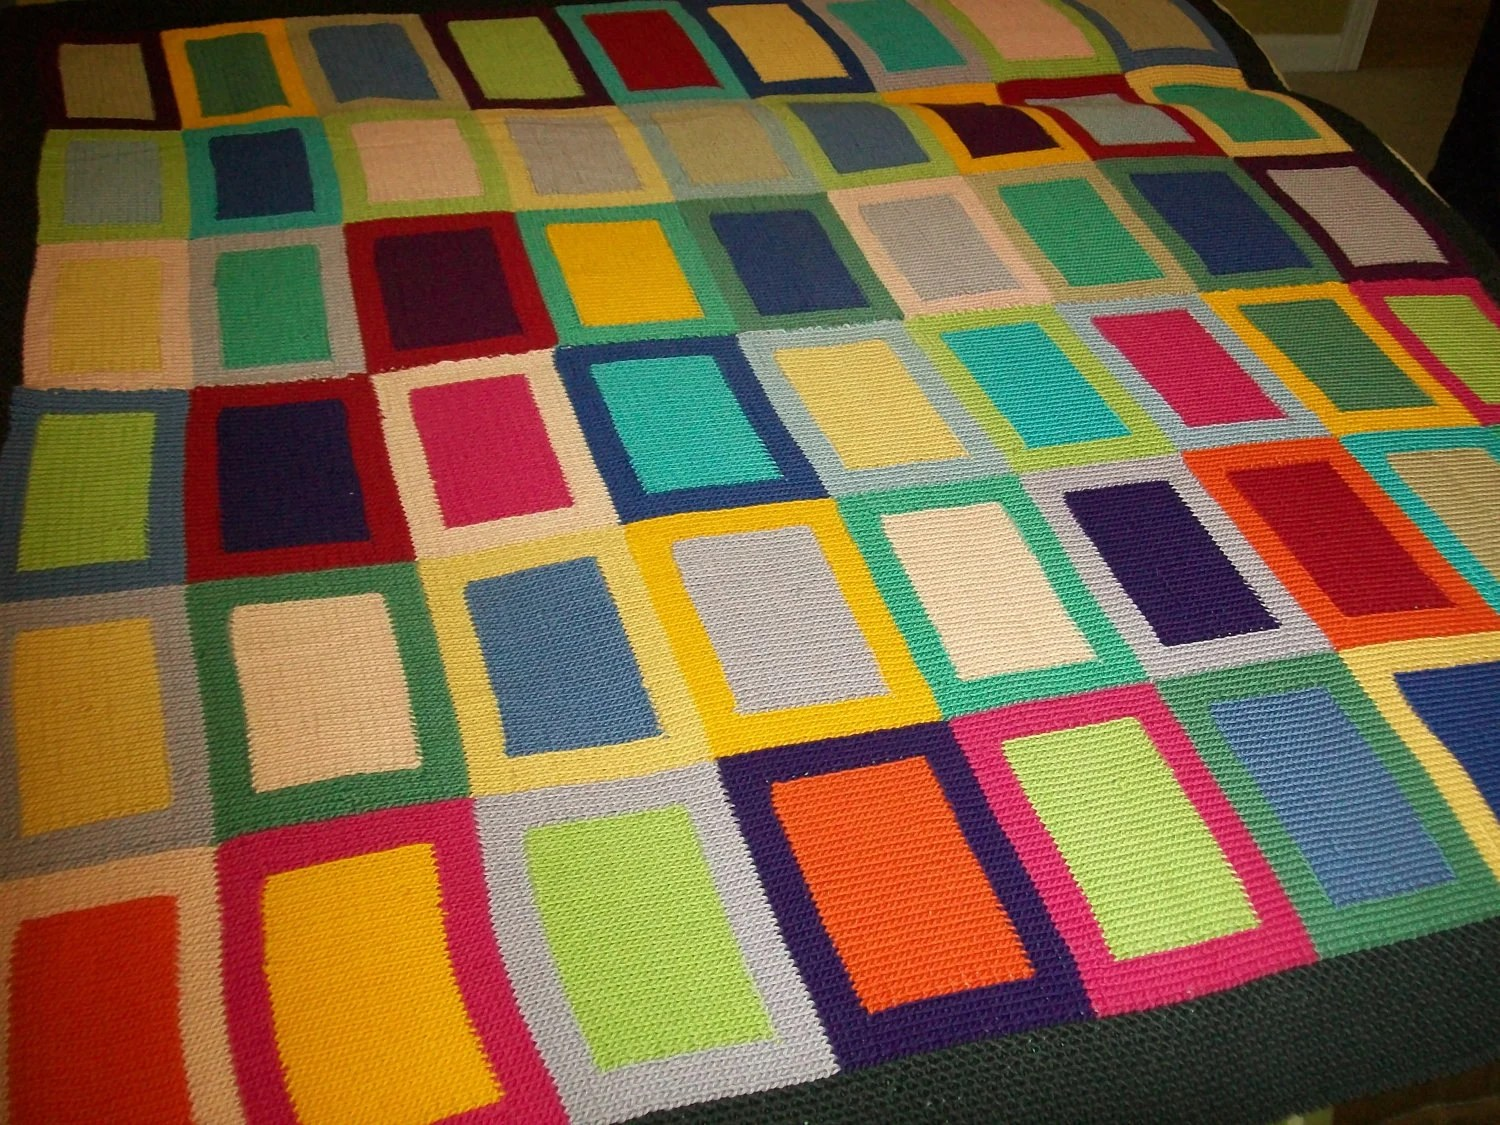 One of a Kind, Hand Knit, Multicolored, Geometric Original Pattern Lap Blanket